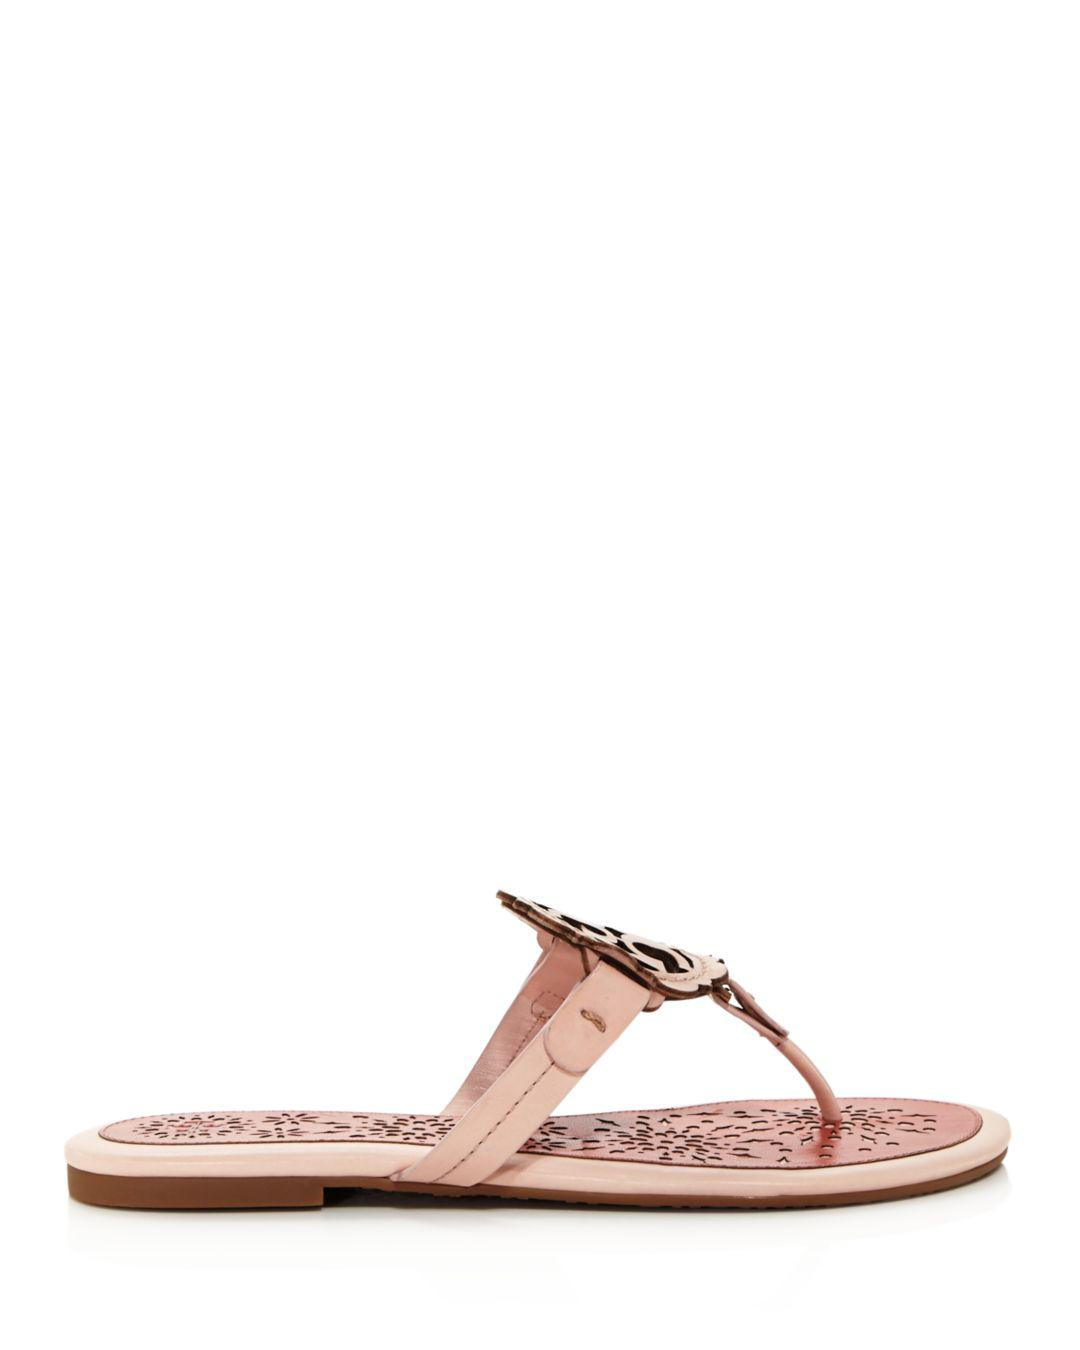 f858320e7 Lyst - Tory Burch Women s Miller Scallop Leather Thong Sandals in Pink -  Save 30%